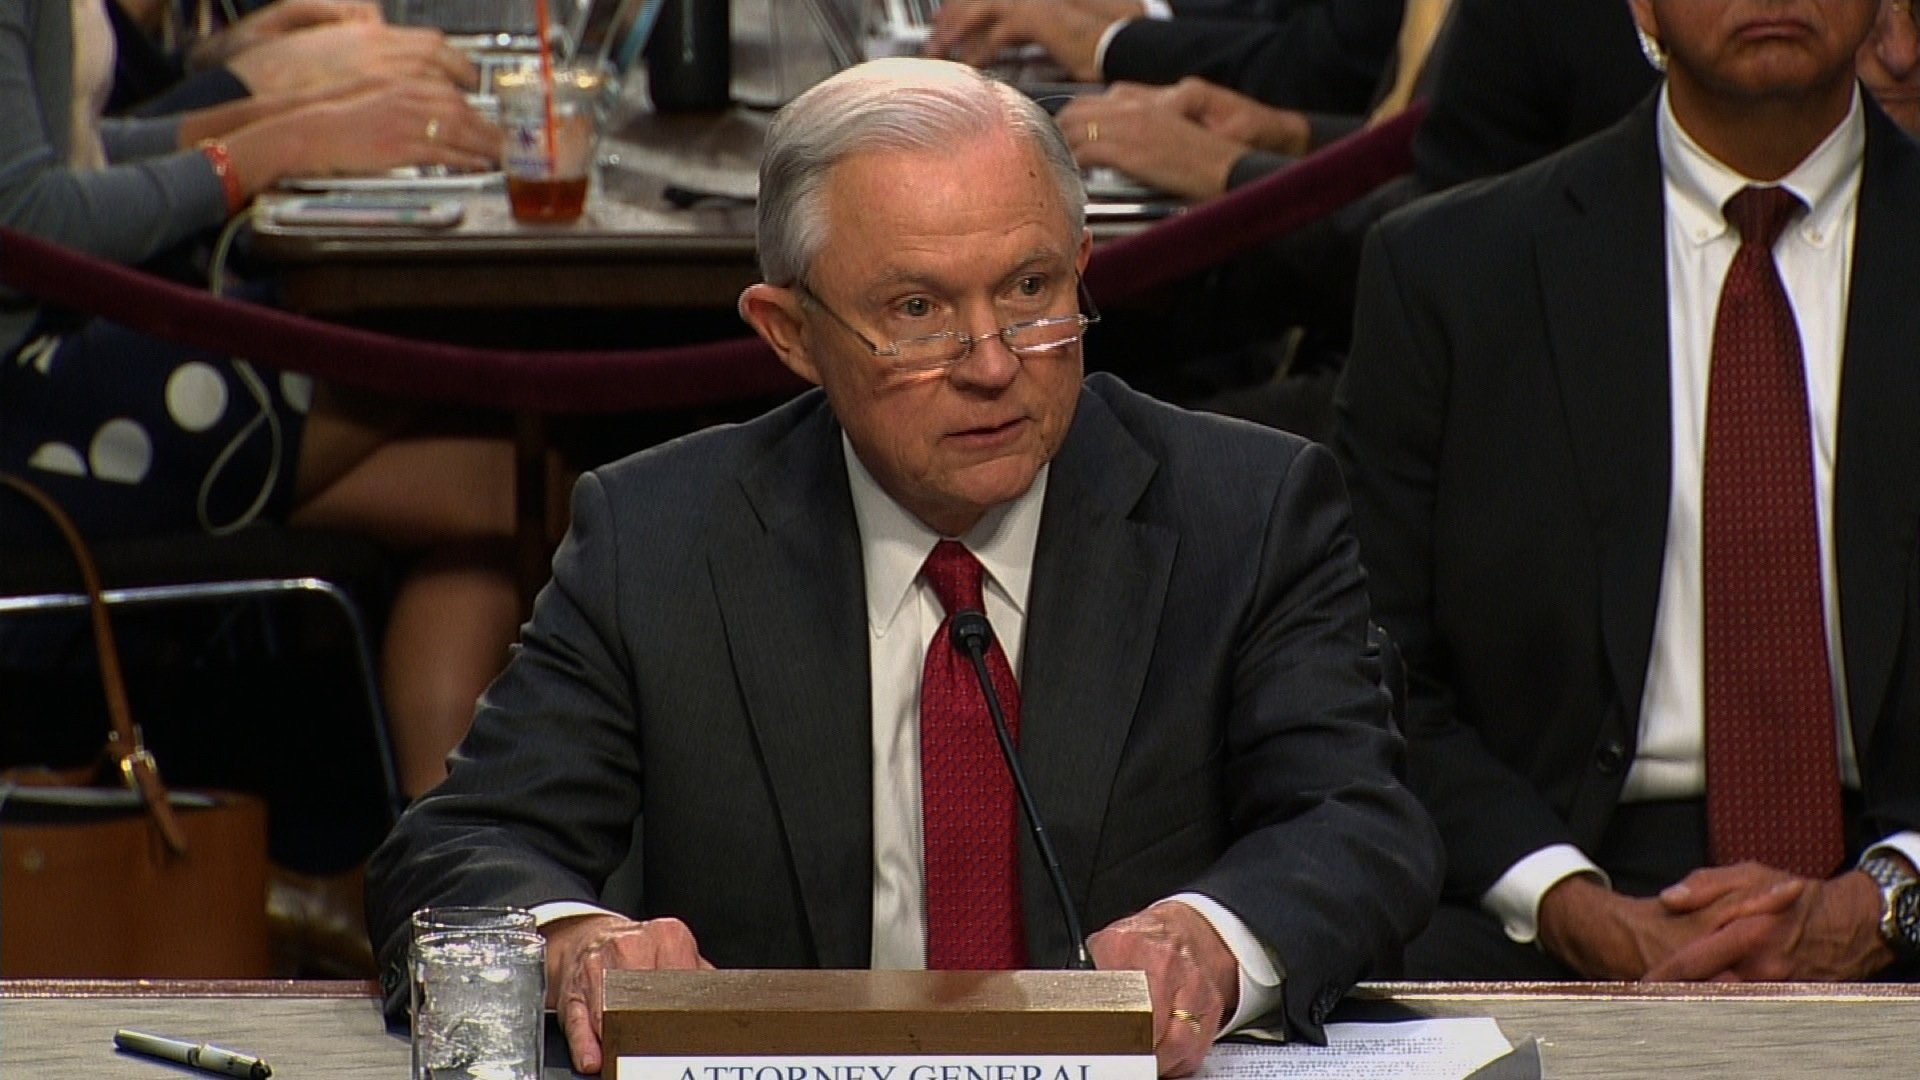 At hearing, attorney general denies 'false and scurrilous allegations' about Russia meeting